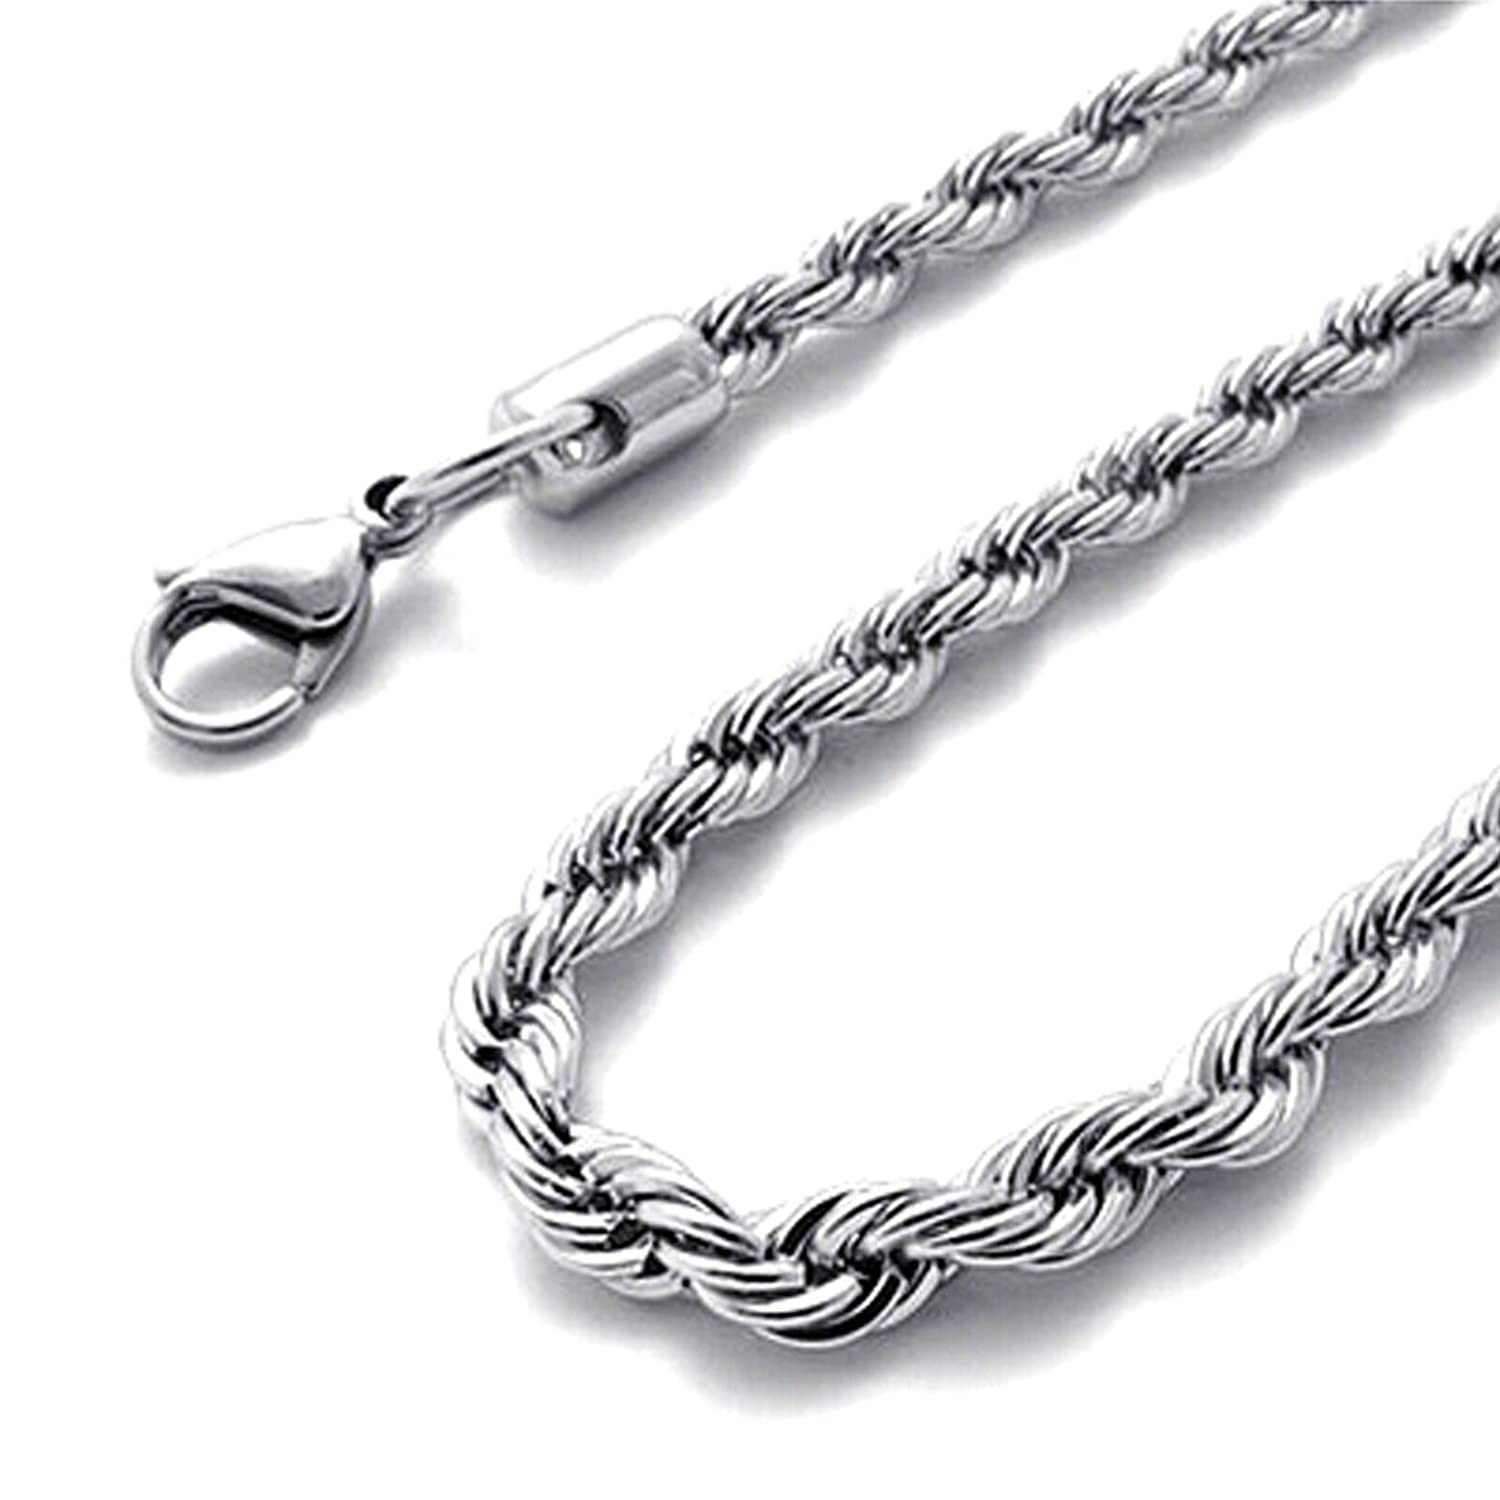 steel sale index boat stainless mooring for chains anchor direct chain marine